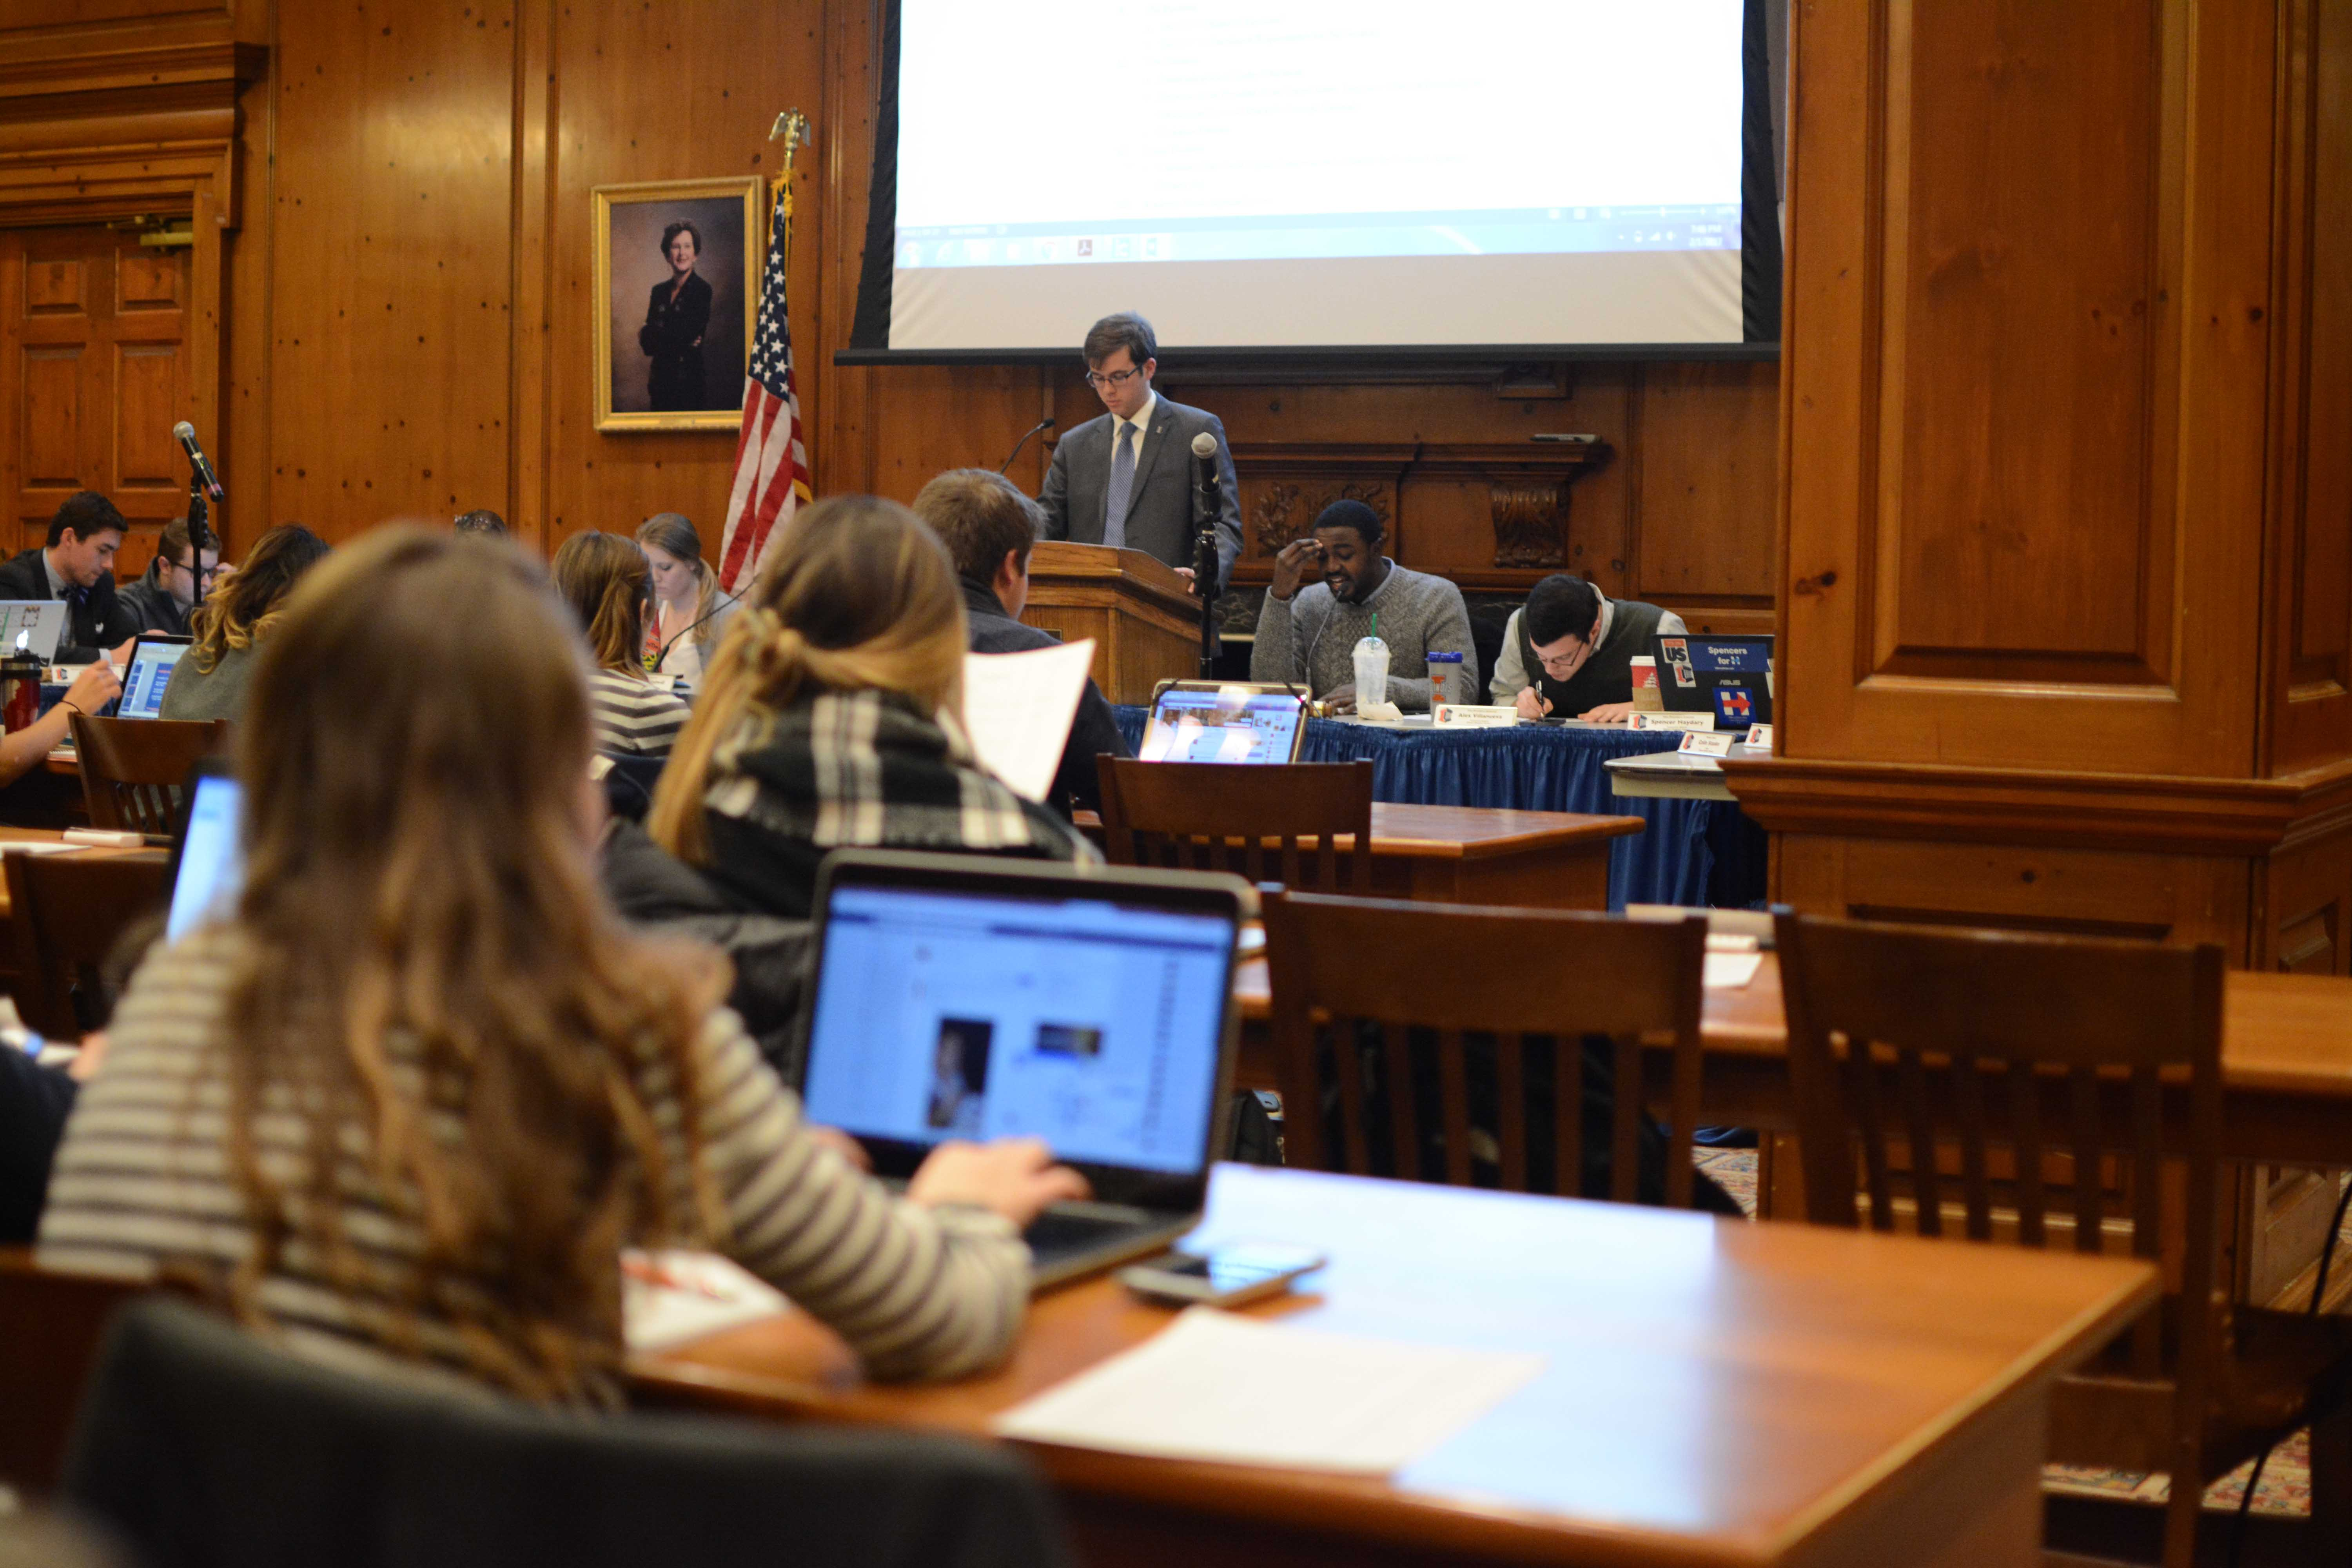 The Illinois Student Government meets in the Pine Room in the Illini Union. Director of the Senate Gabby Gendek announced her resignation at last night's meeting.